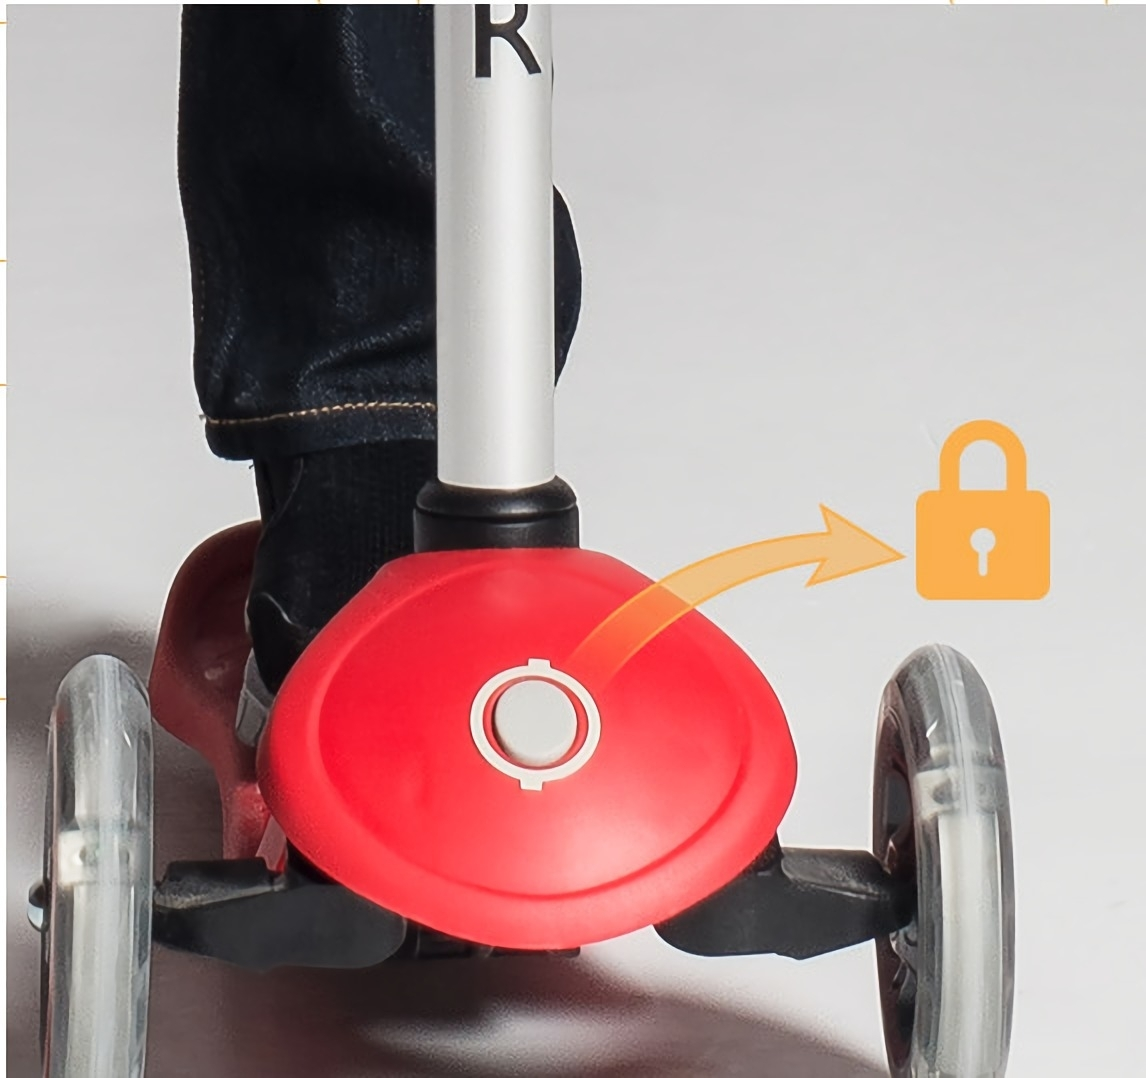 scooter with patented steering lock button